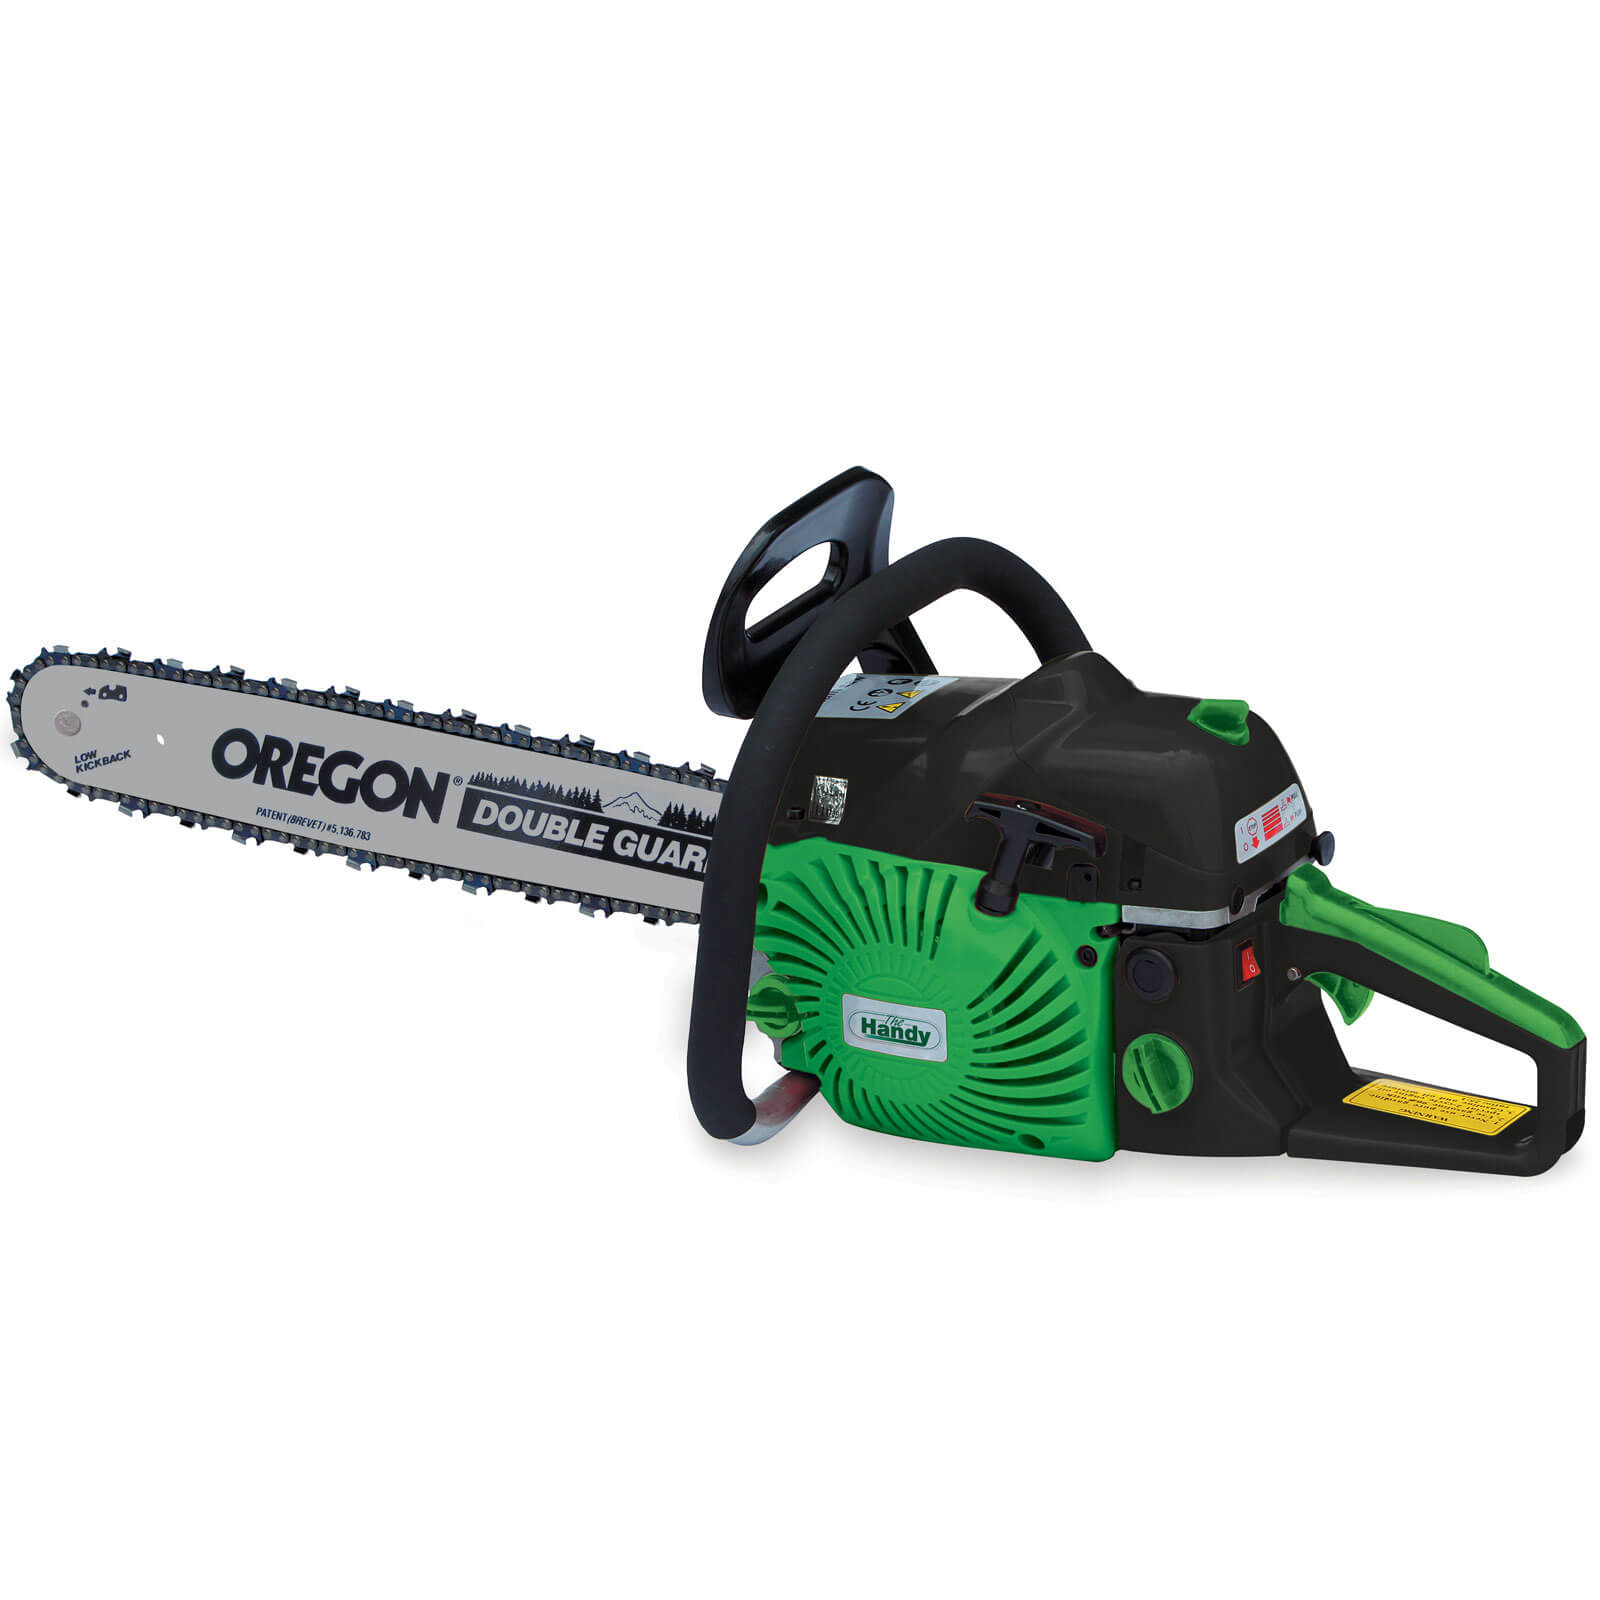 Image of Handy THPCS18 Petrol Chainsaw 450mm